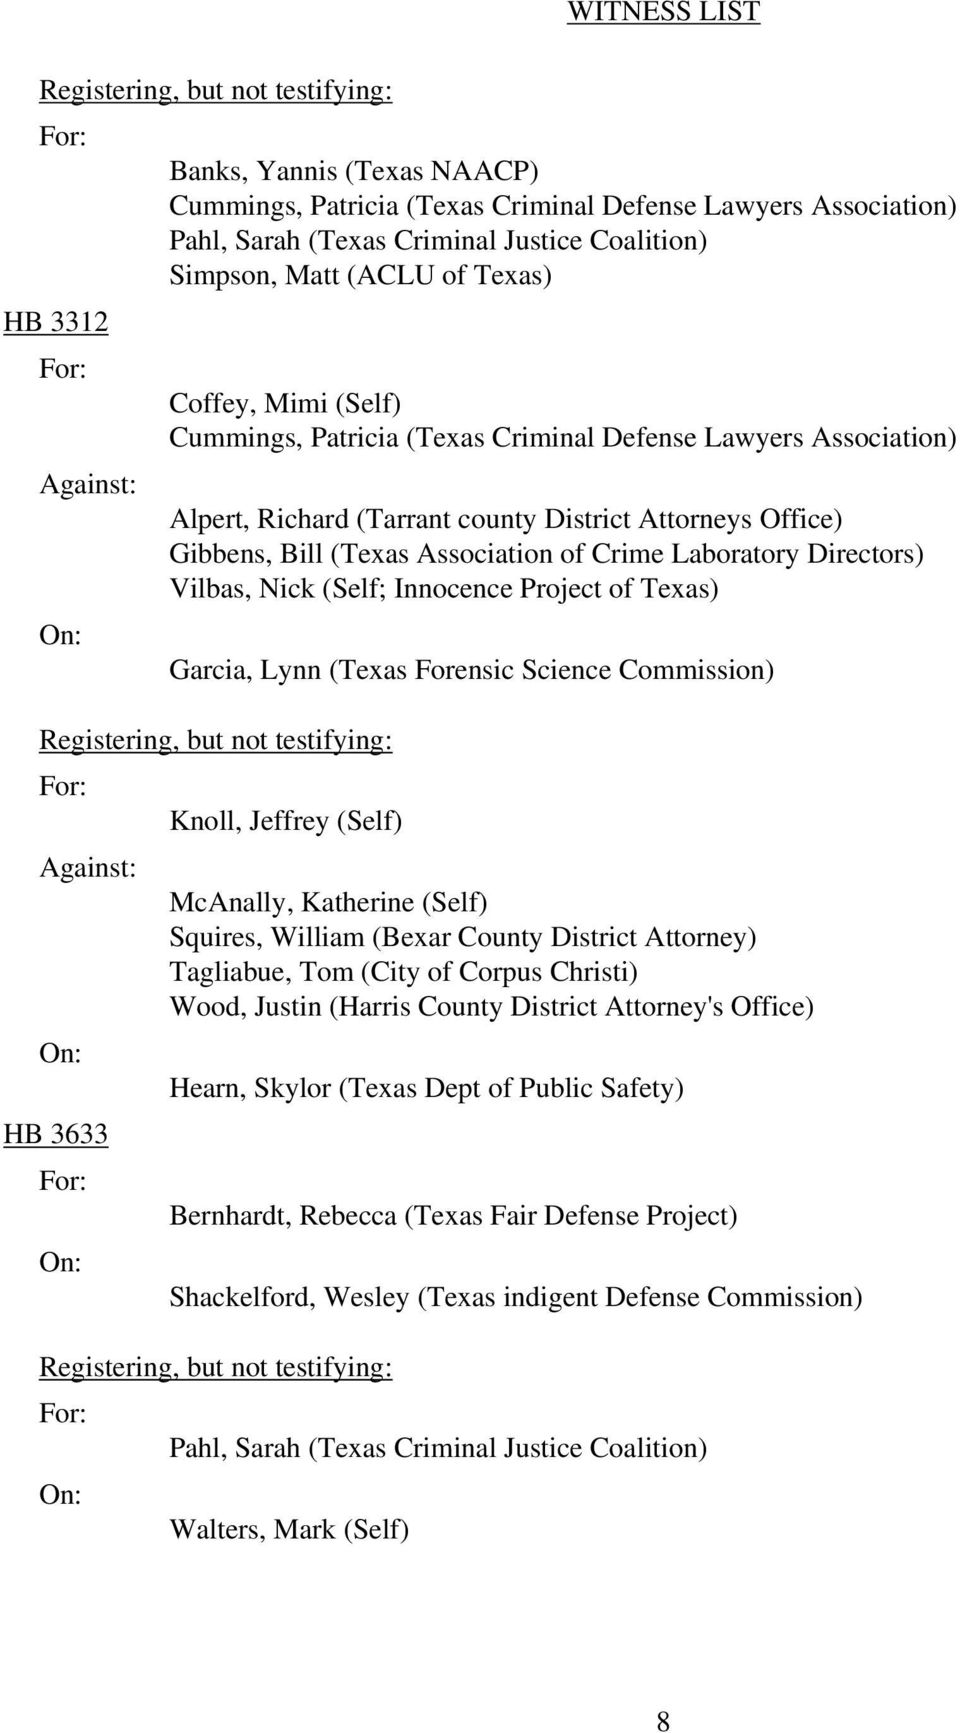 (Self) Squires, William (Bexar County District Attorney) Tagliabue, Tom (City of Corpus Christi) Wood, Justin (Harris County District Attorney's Office)